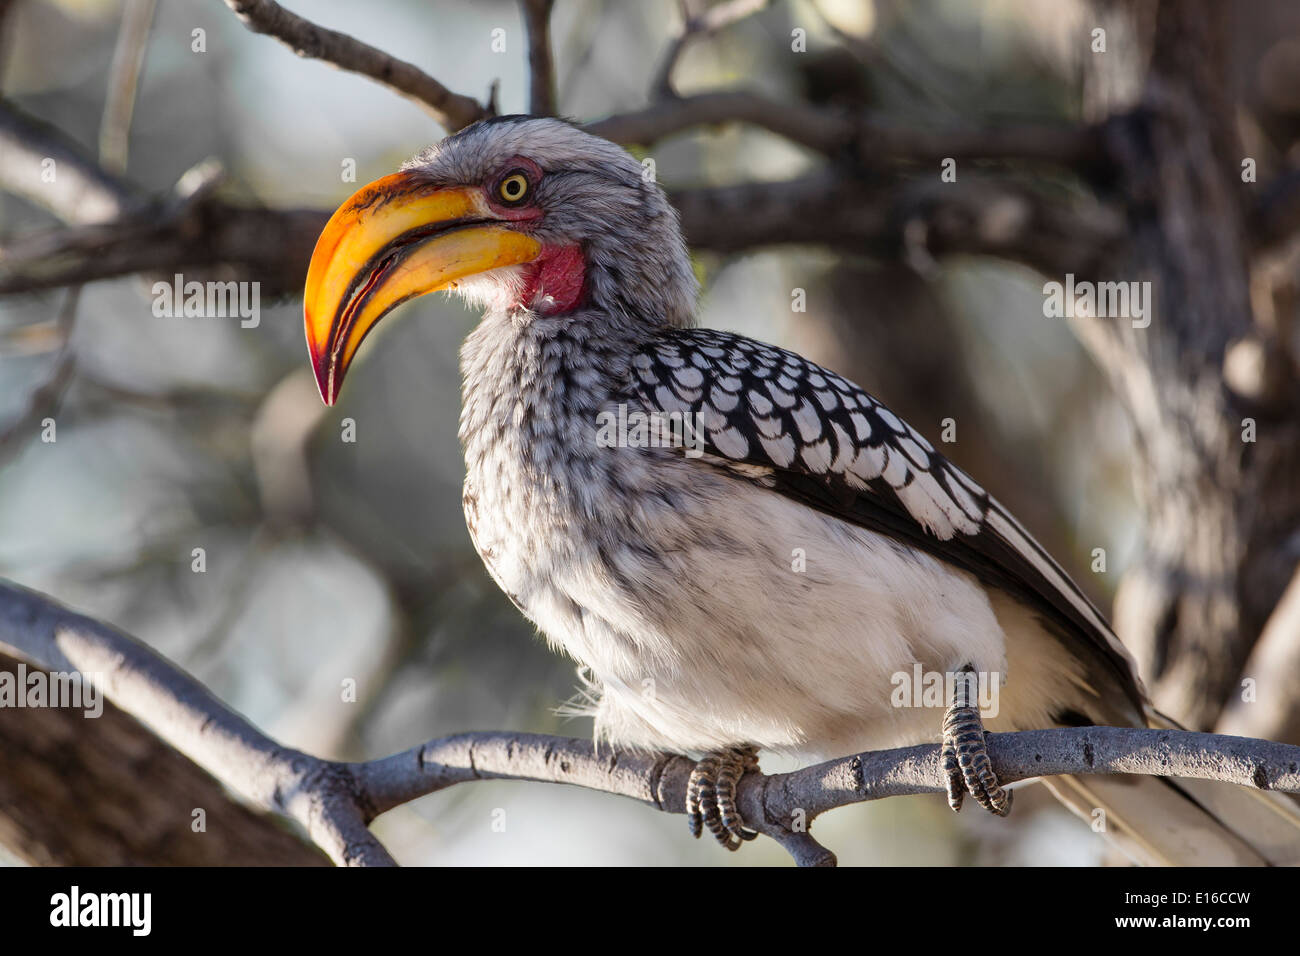 Bucero Yellow-Billed sur Imagen De Stock